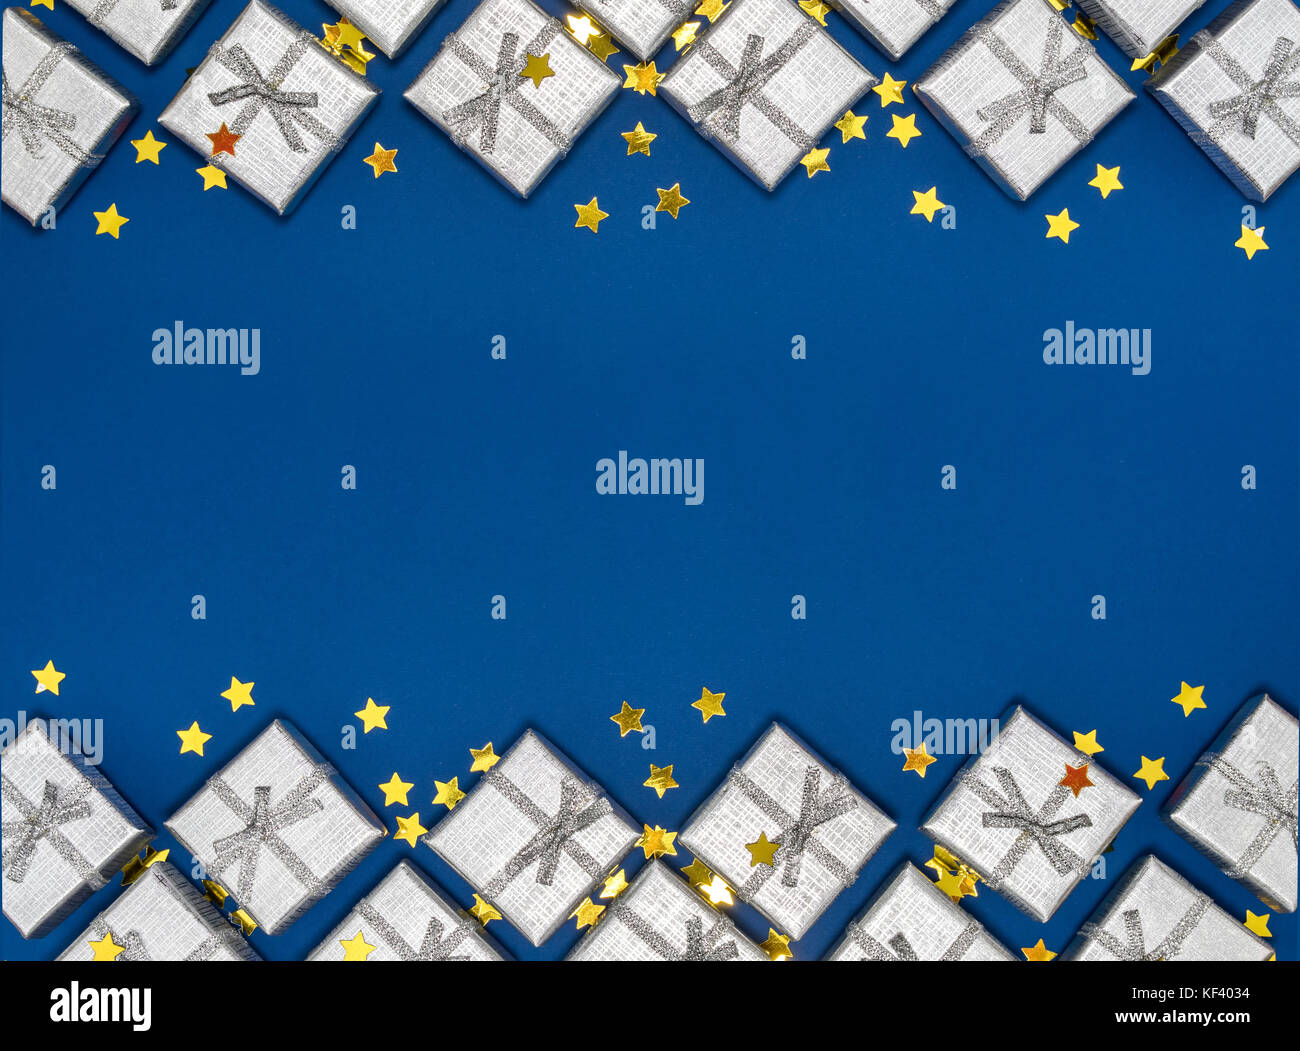 border of silver shiny gifts and golden stars on blue background new years and christmas decorations group of bright gift boxes view from above